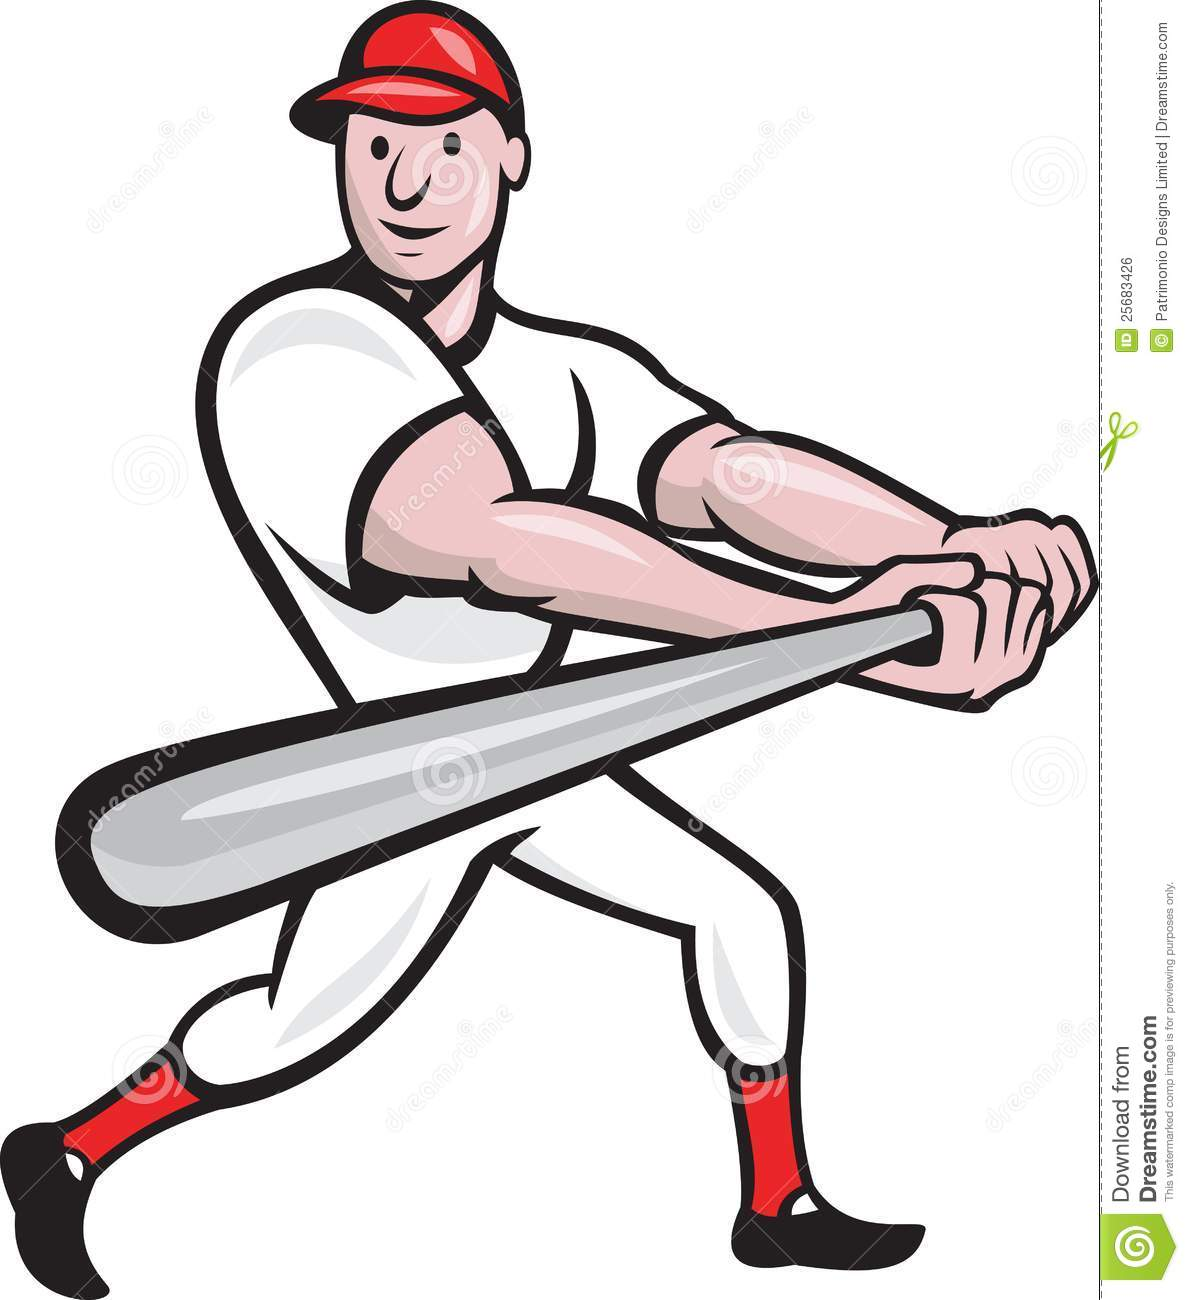 free clipart of a baseball player - photo #27